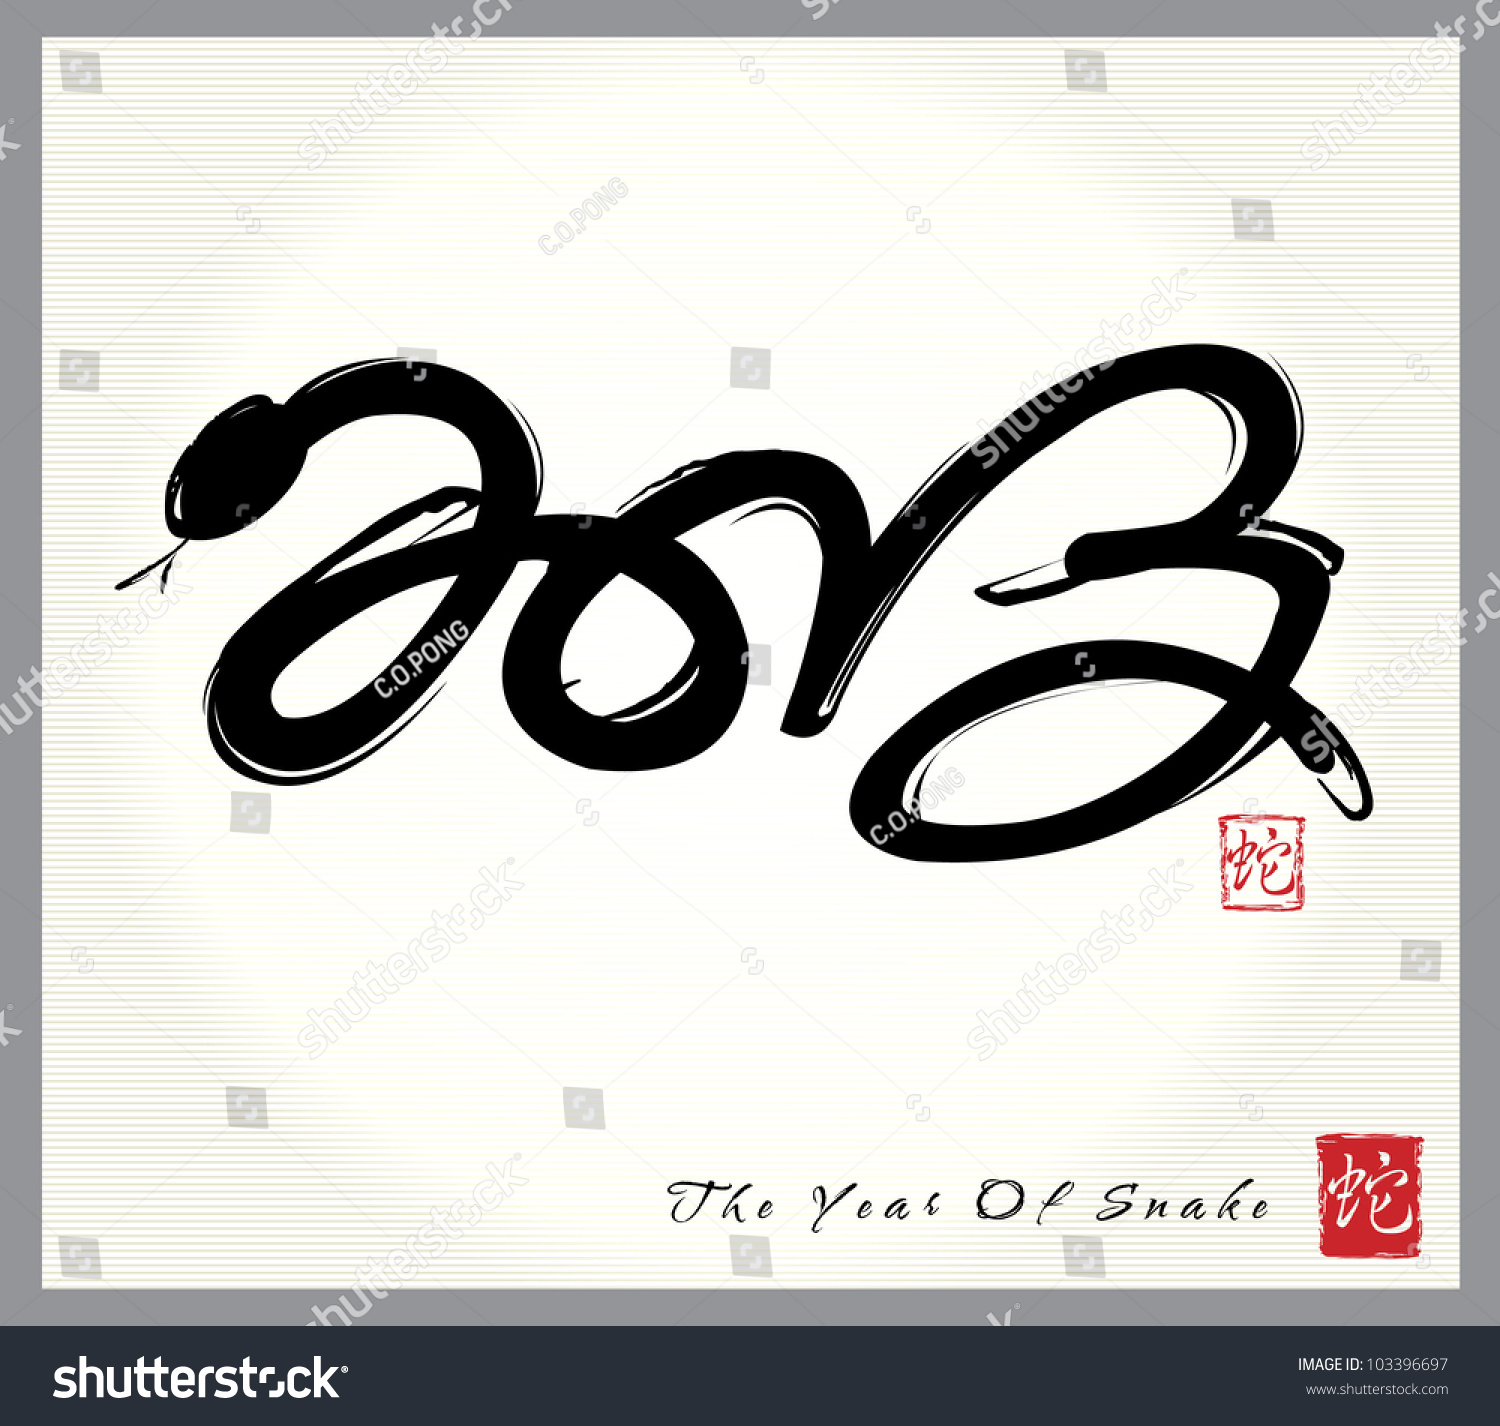 Chinese Calligraphy For The Year Of Snake 2013